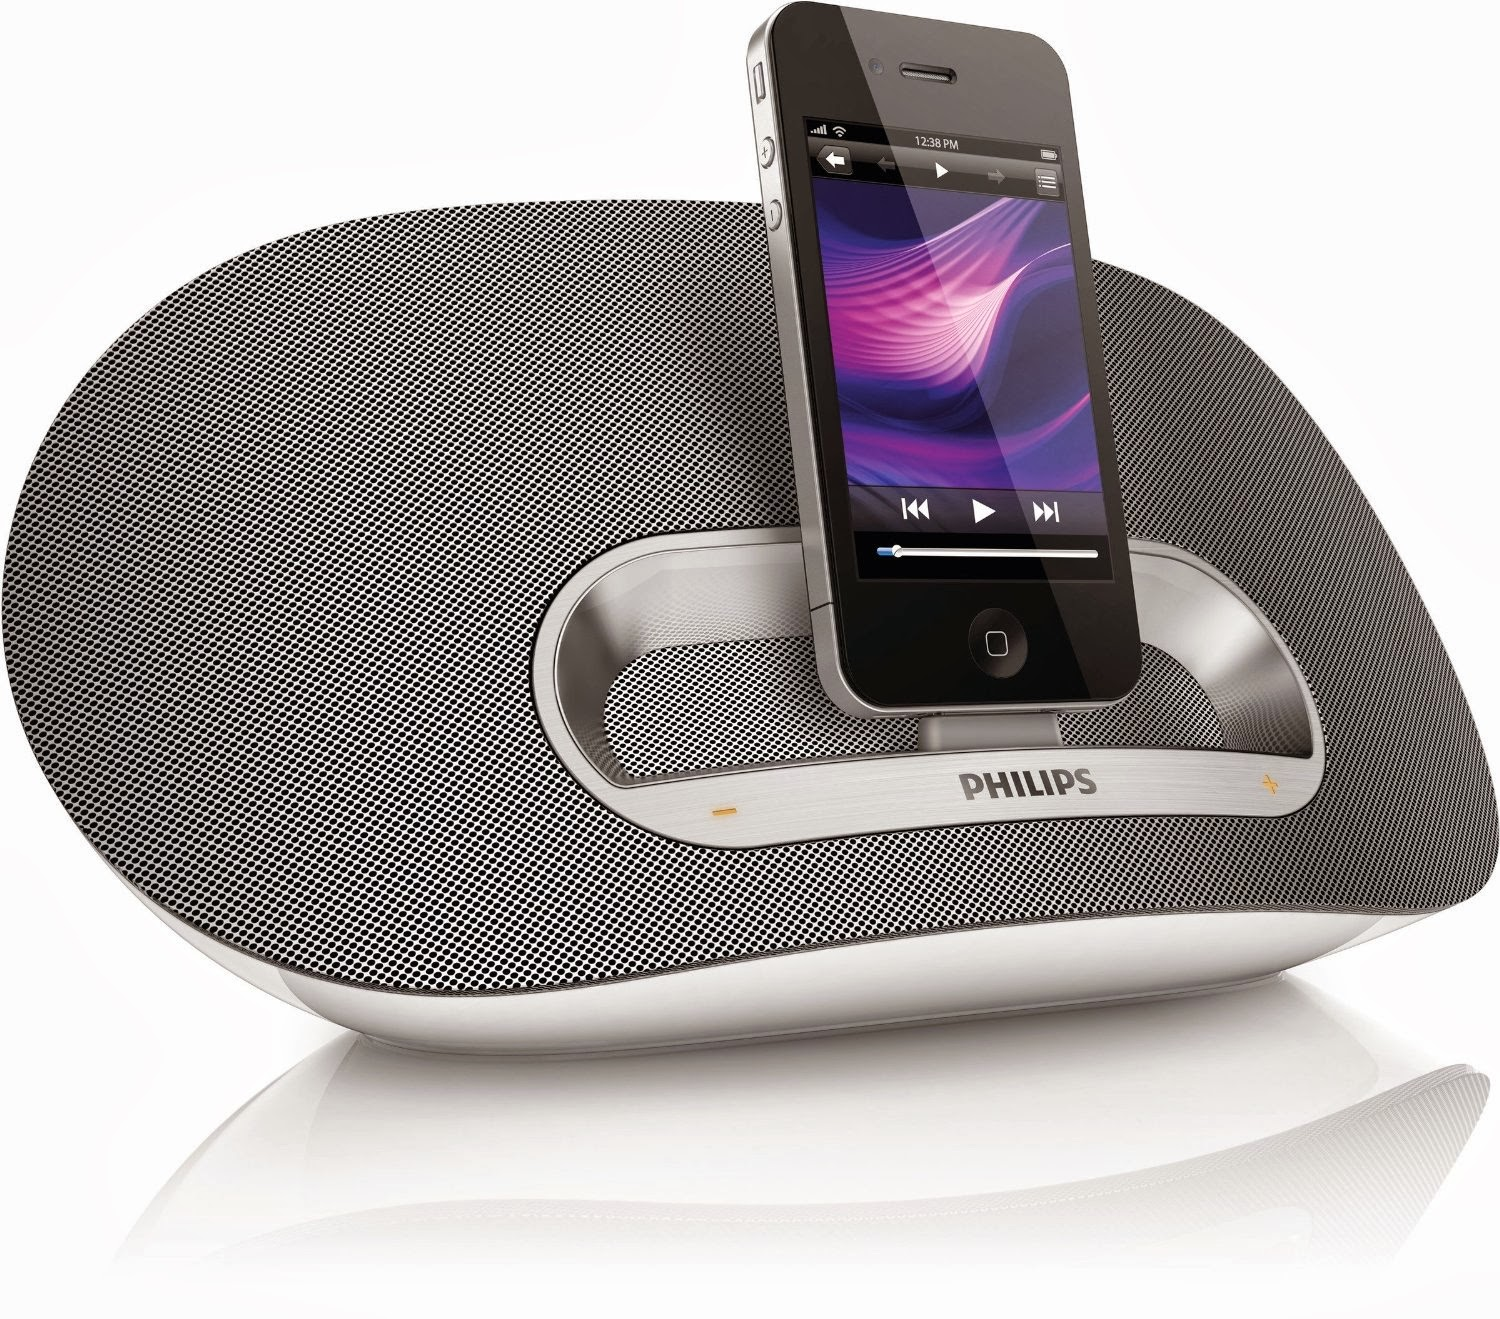 Nuevo concurso de GVisionorte: PHILIPS iPhone / iPod Docking Speaker DS3120/05